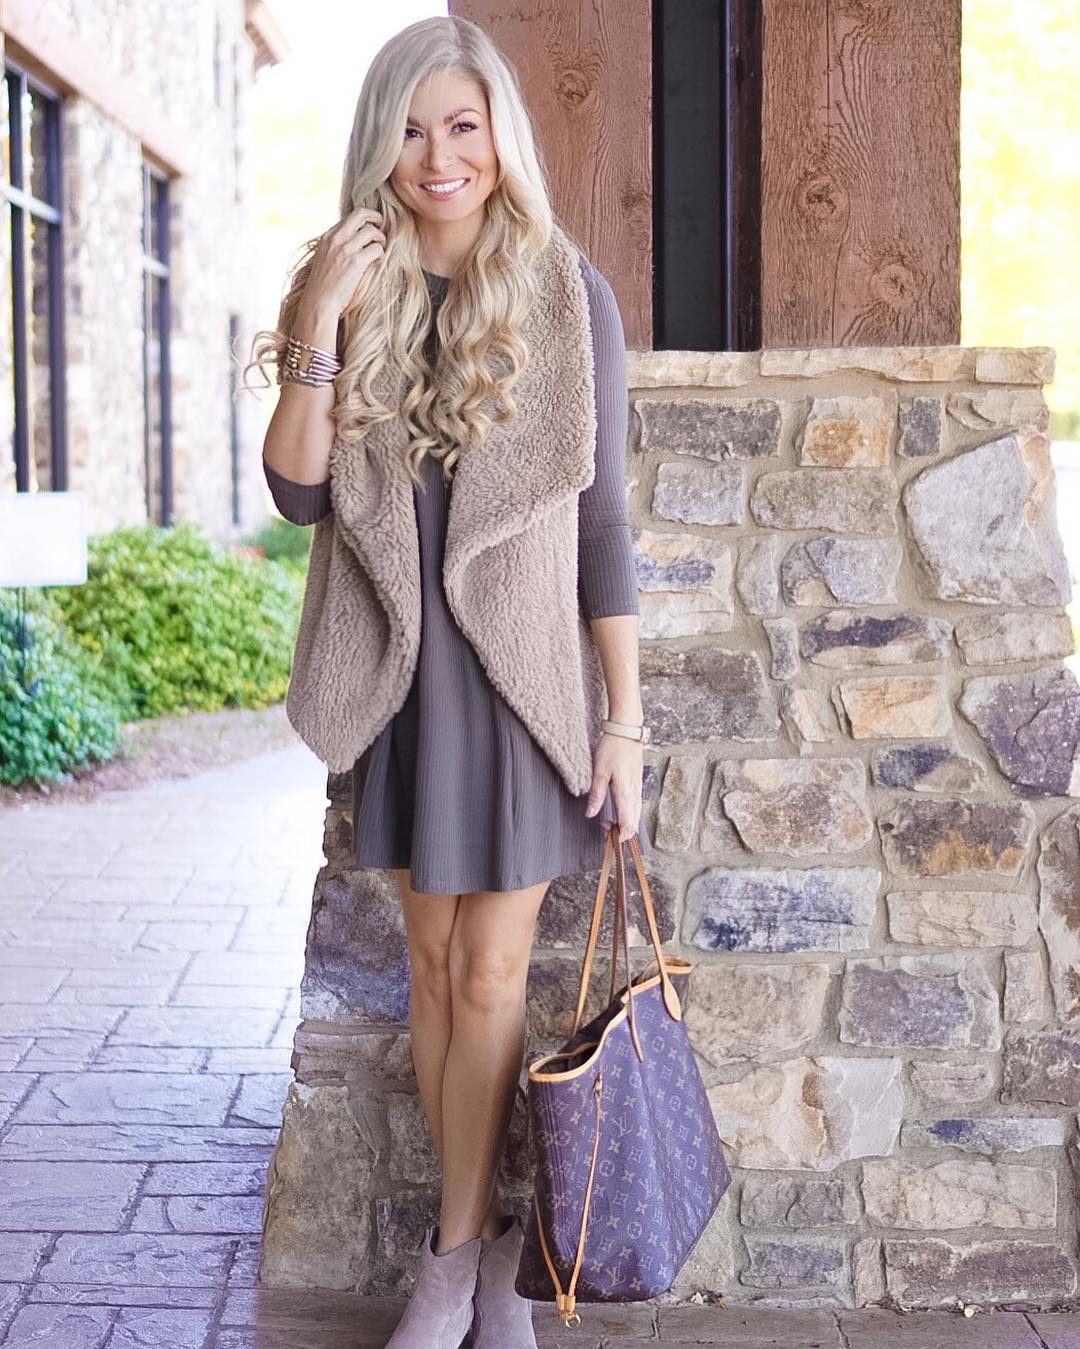 Obsessed with this furry vest! // I've been way behind on my posts but this look and bunch of other recent outfits are on the blog today!! http://liketk.it/2pzja #liketkit #liketkunder50 #wiw #ootd #fall #fallfashion